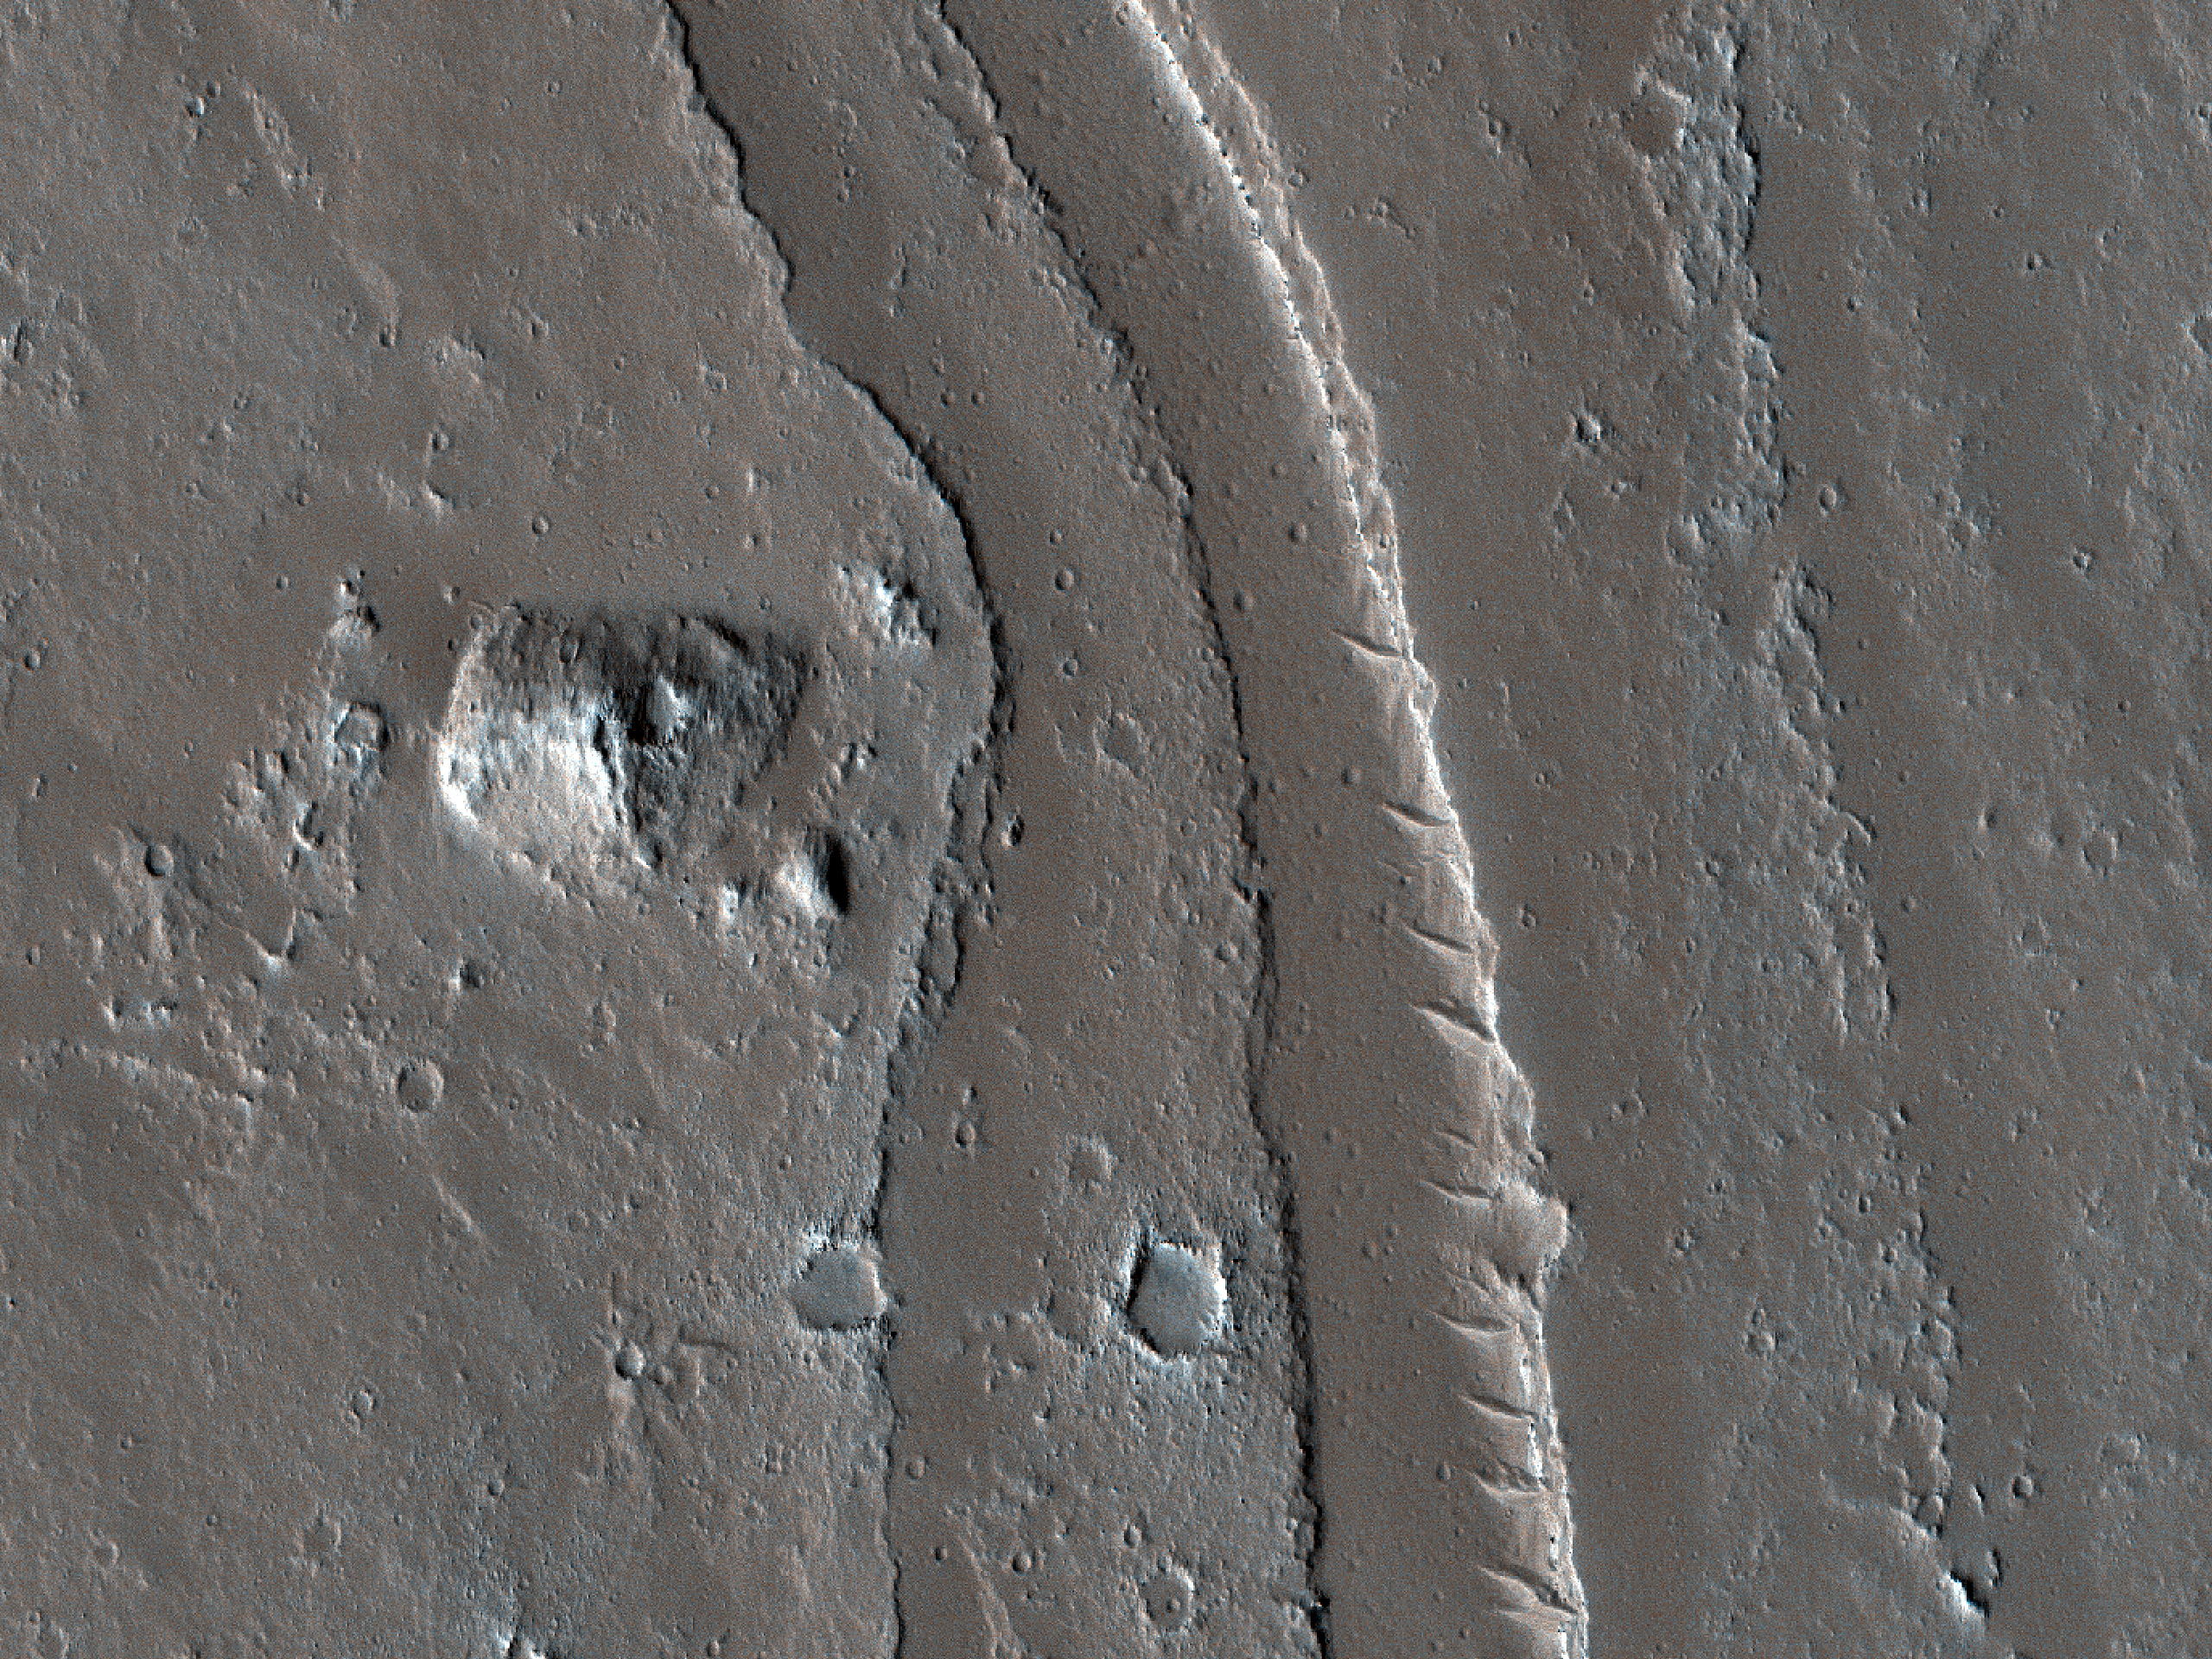 A Conical Feature near Channels and Fissures